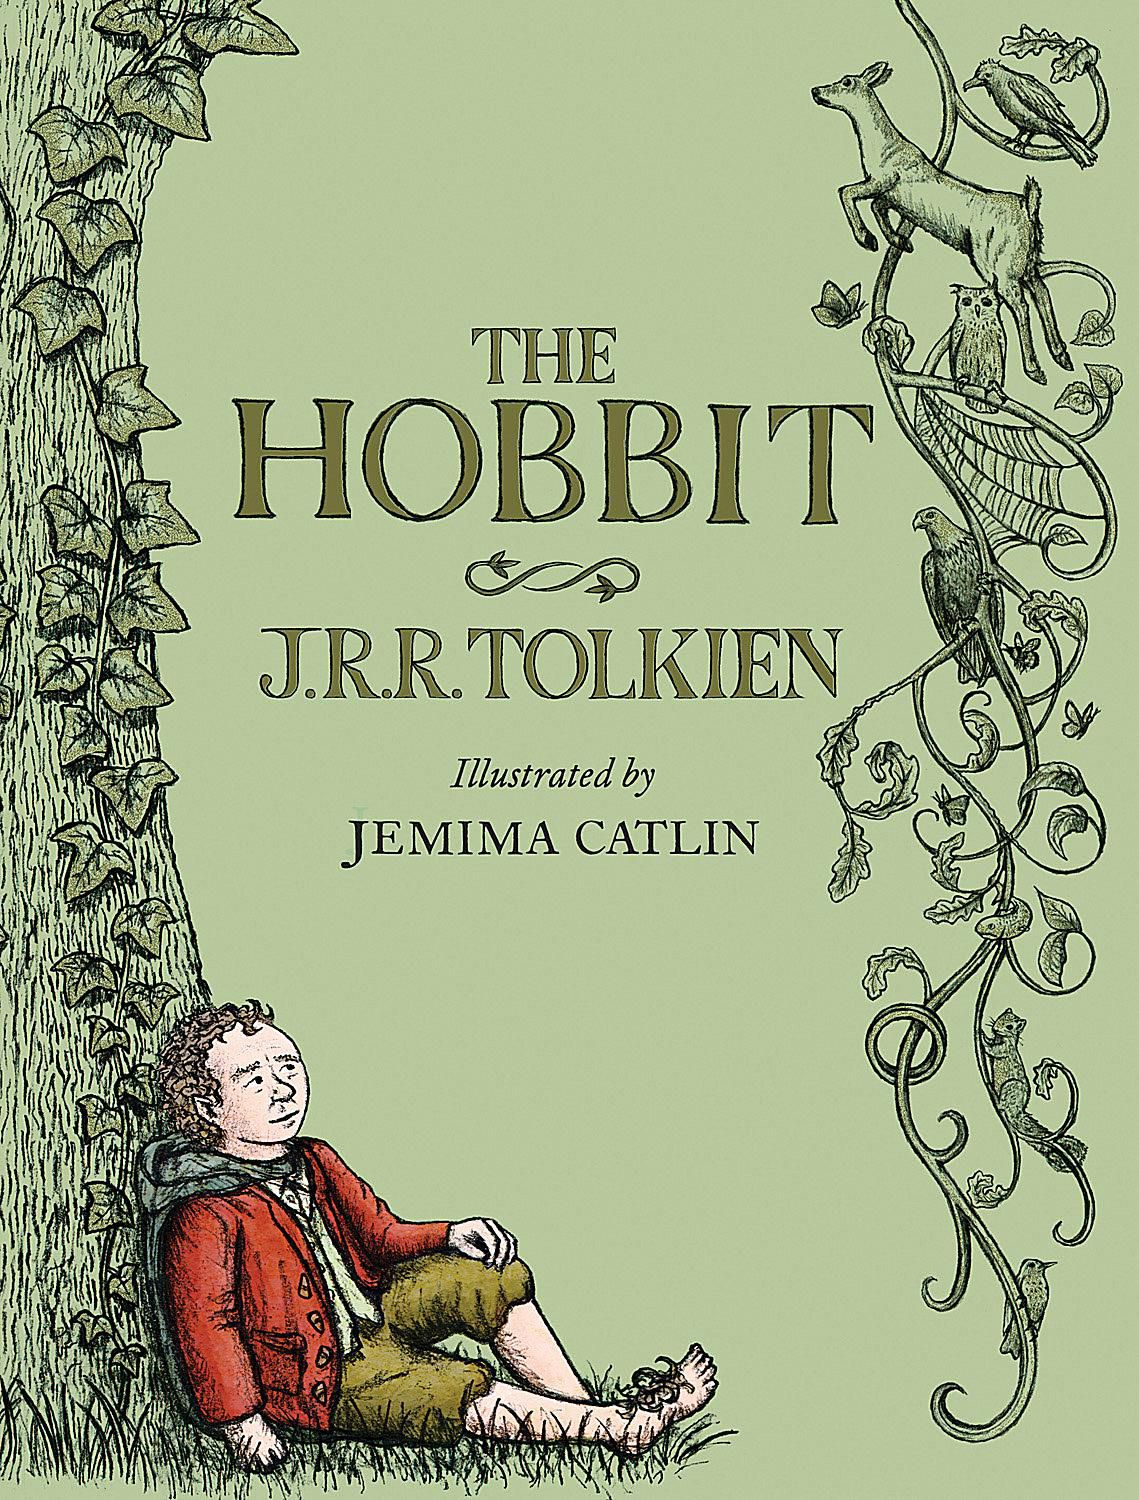 plot and themes of j r r tolkien s book the hobbit best editions of the hobbit for kids and families